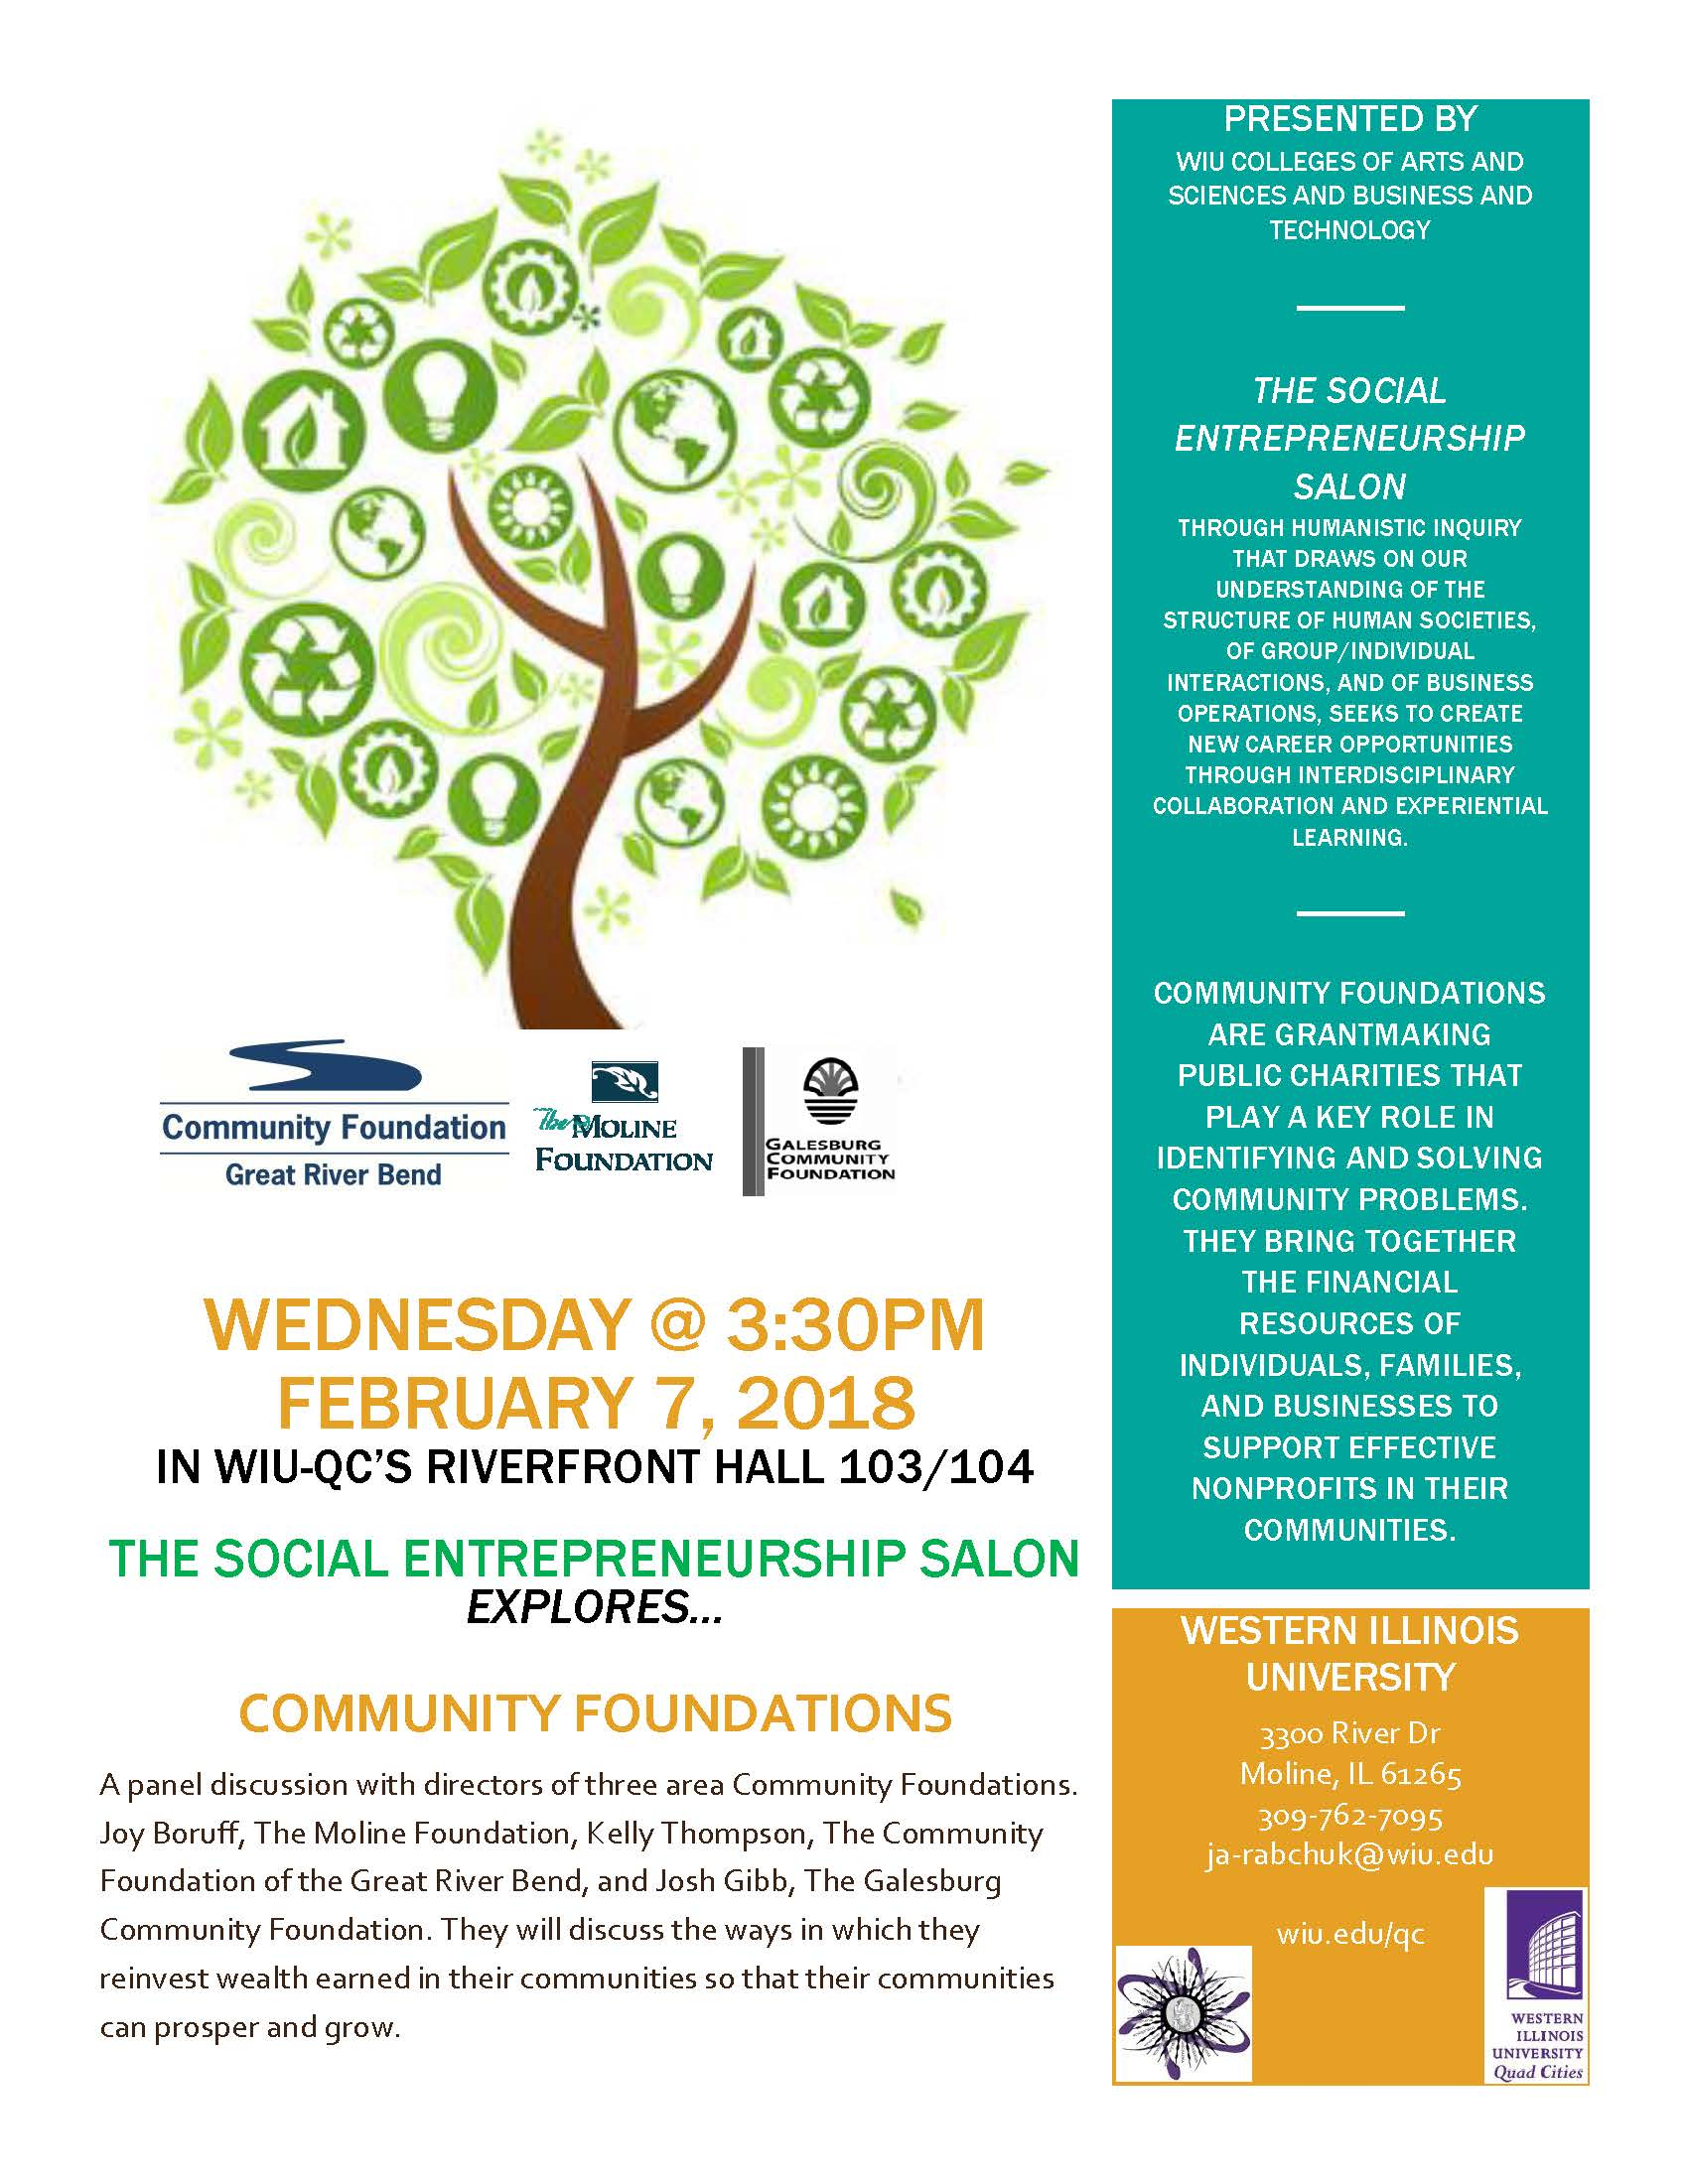 Social Entrepreneurship Salon. Wednesday, February 7, 2018, at 3:30 p.m. in the WIU-QC's Riverfront Hall 103/104.